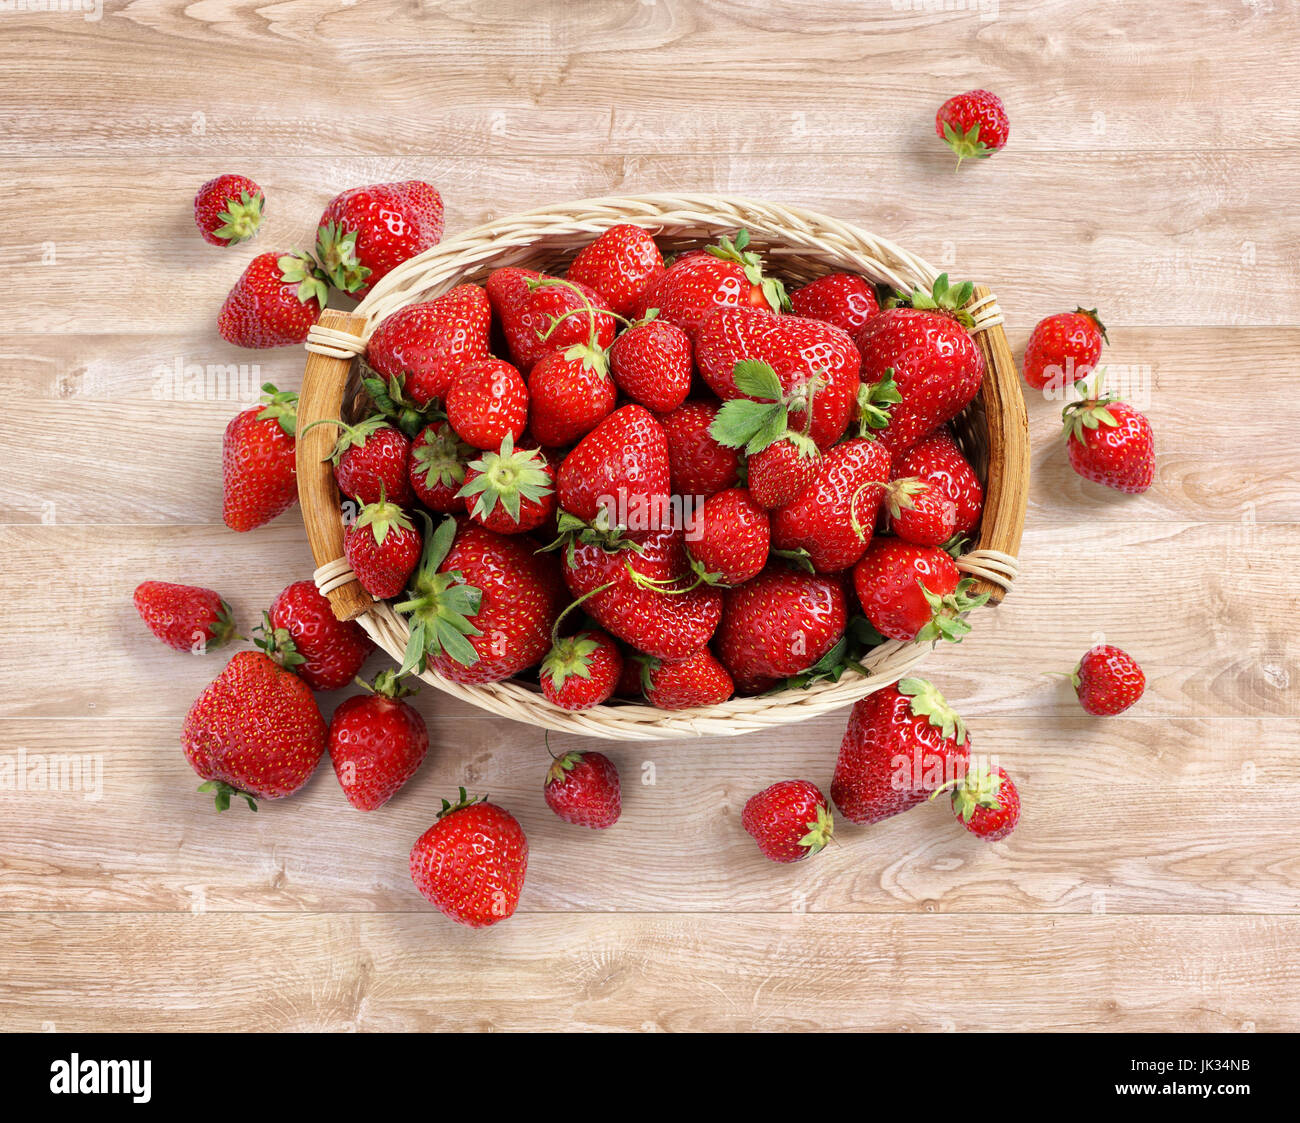 Fresh strawberry in basket on wooden background. Top view. High resolution. Harvest concept Stock Photo